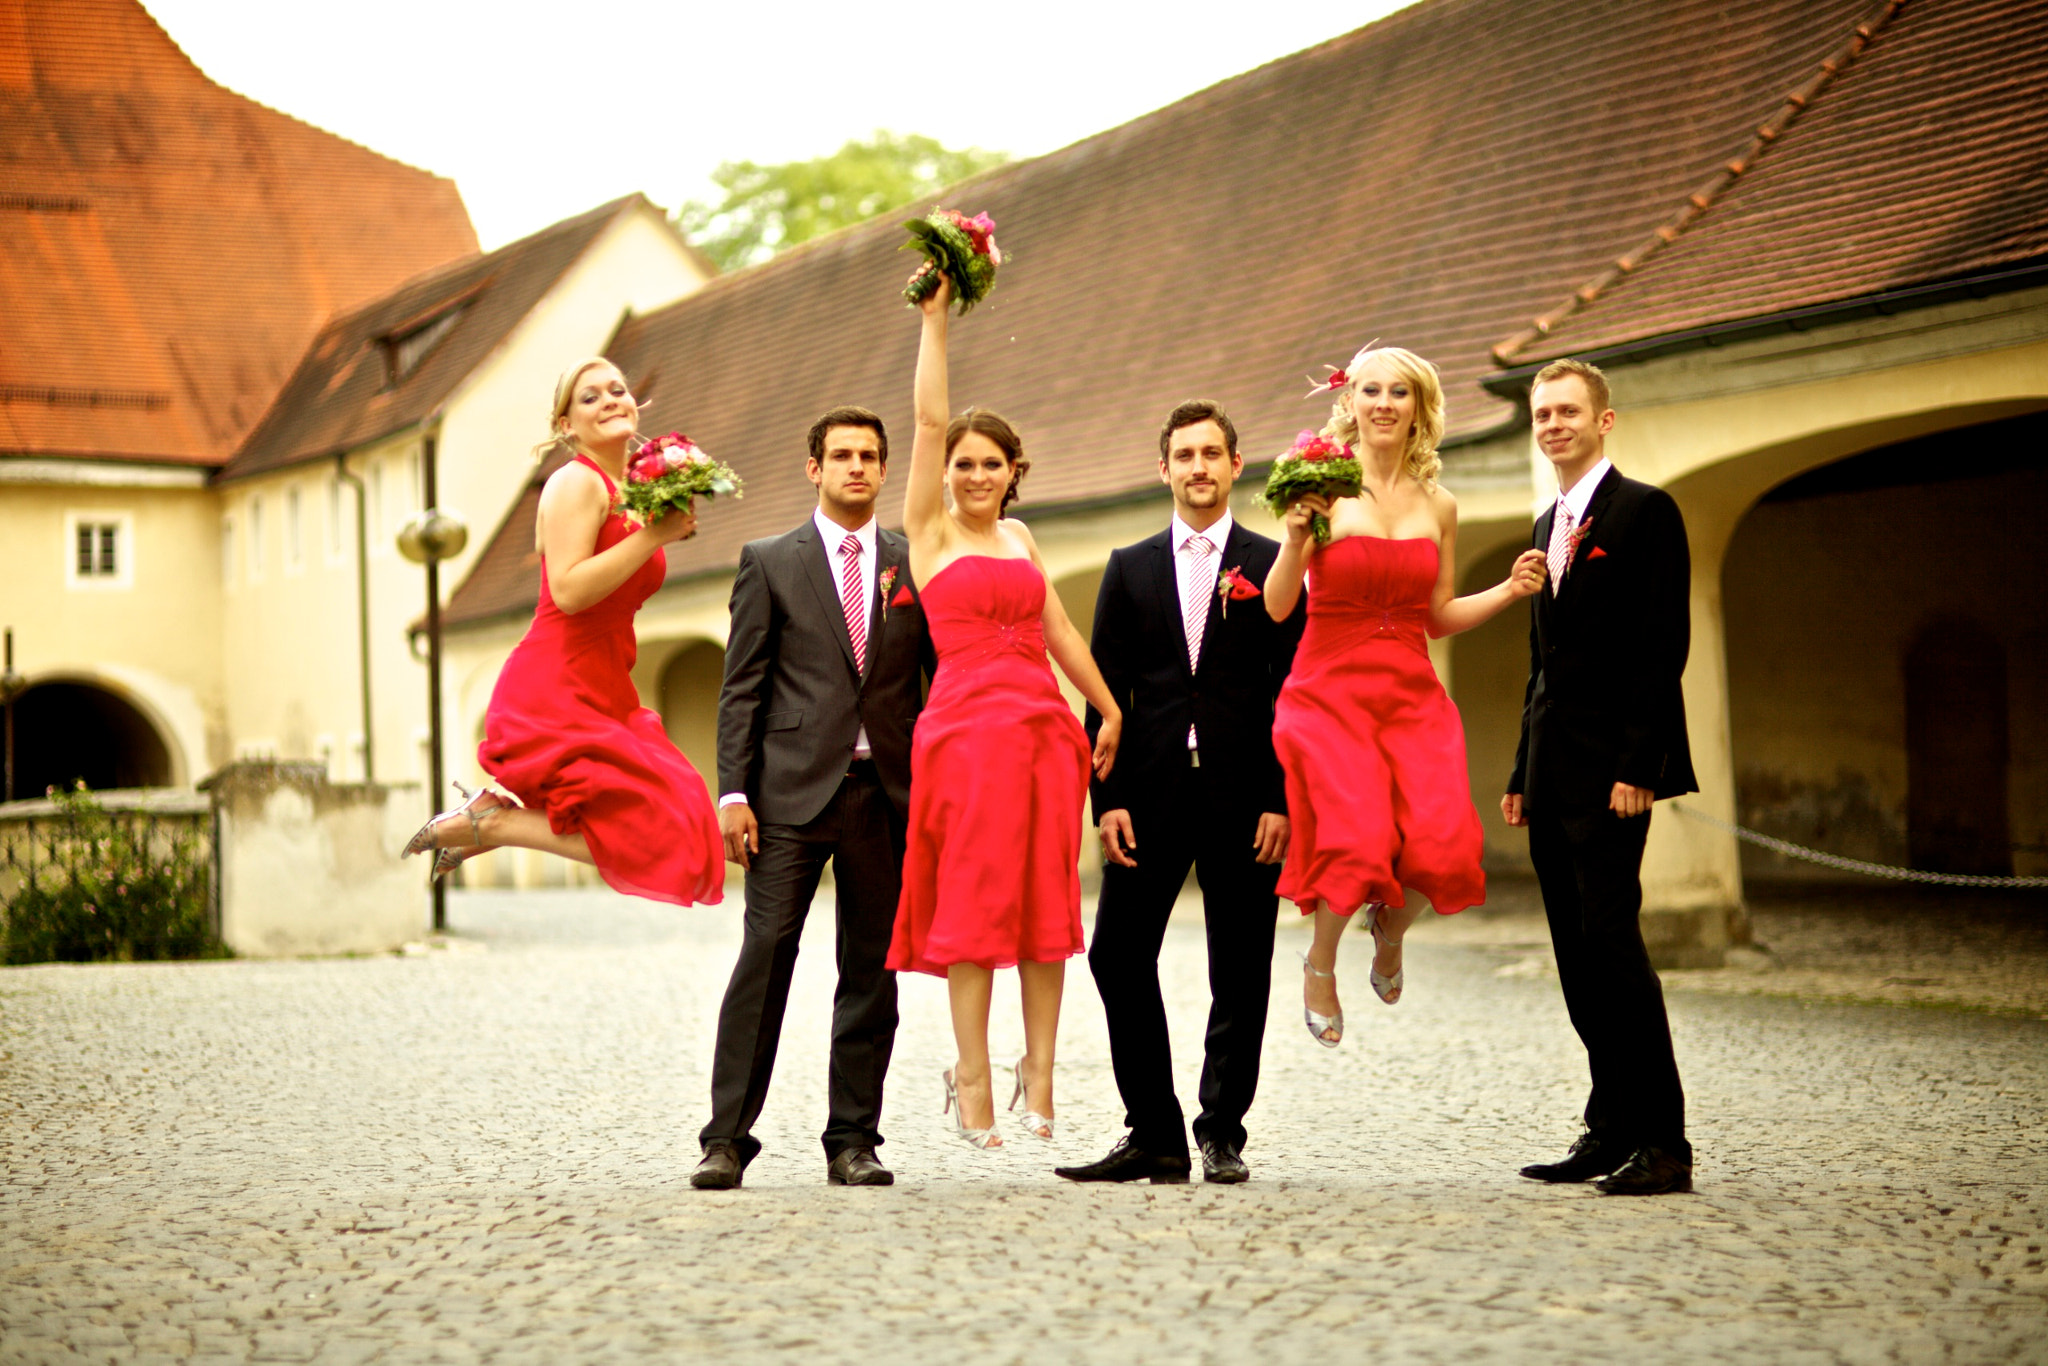 Photograph Jumping girls at a Wedding by Philipp Göllner on 500px